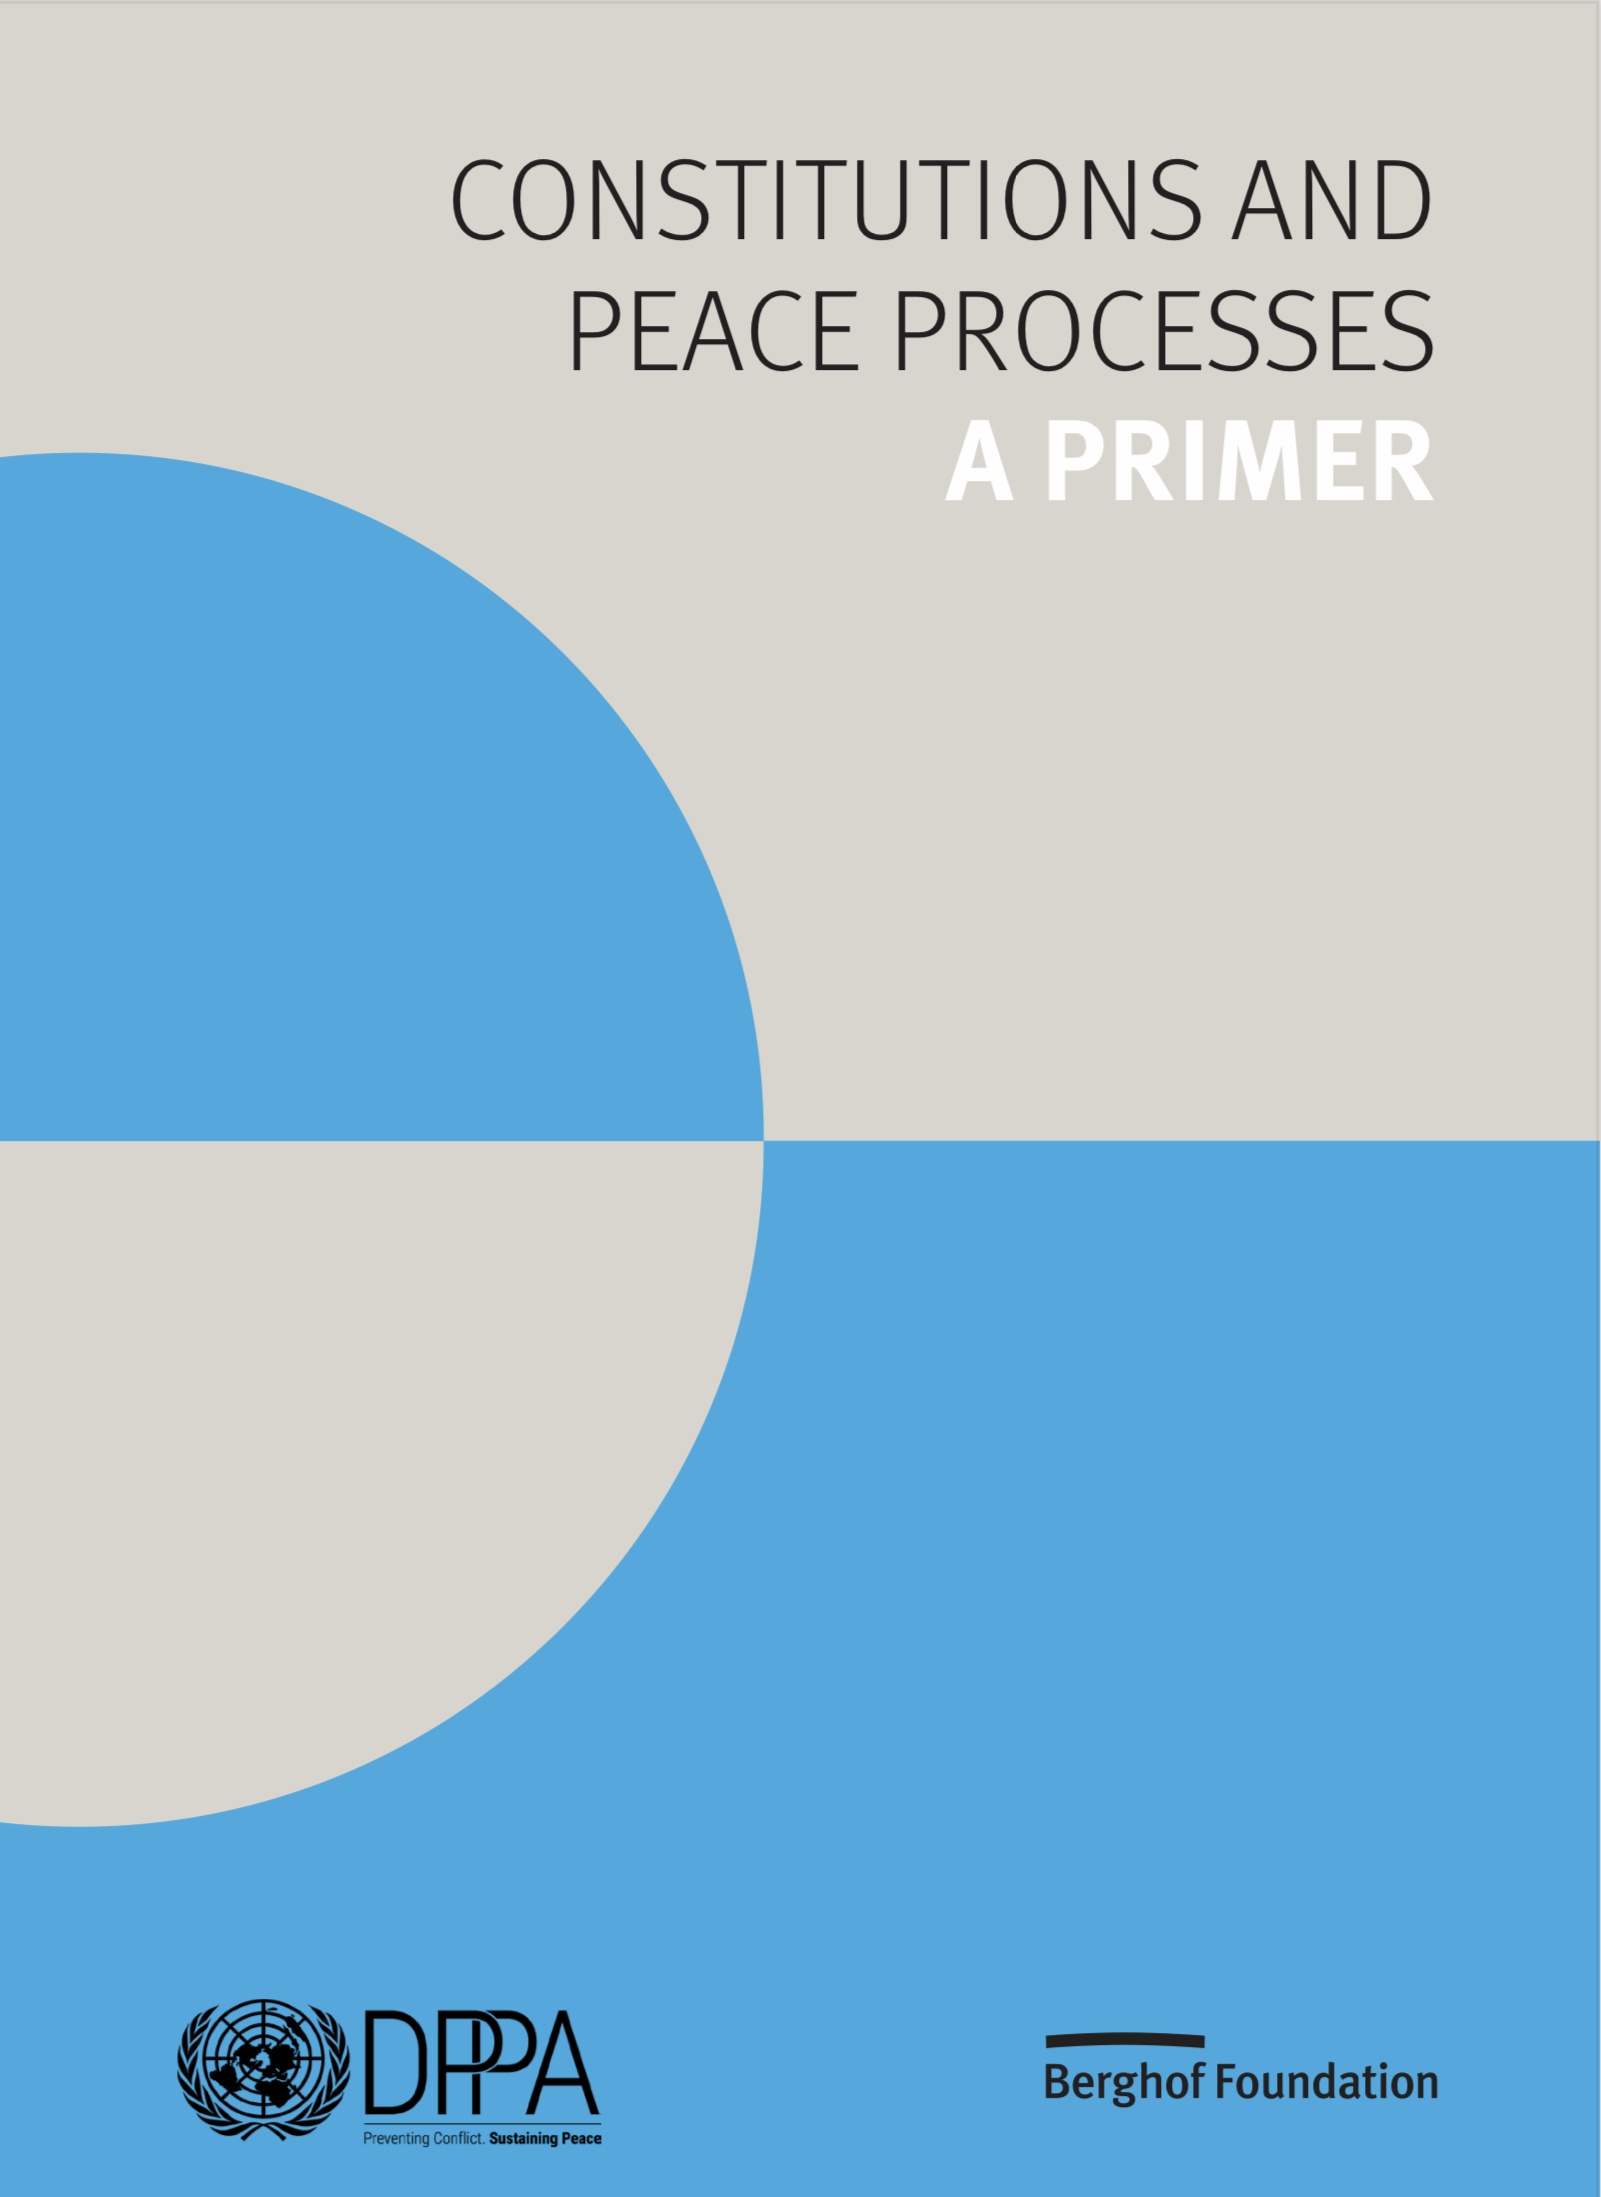 Constitutions and Peace Processes: A Primer (Cover page)